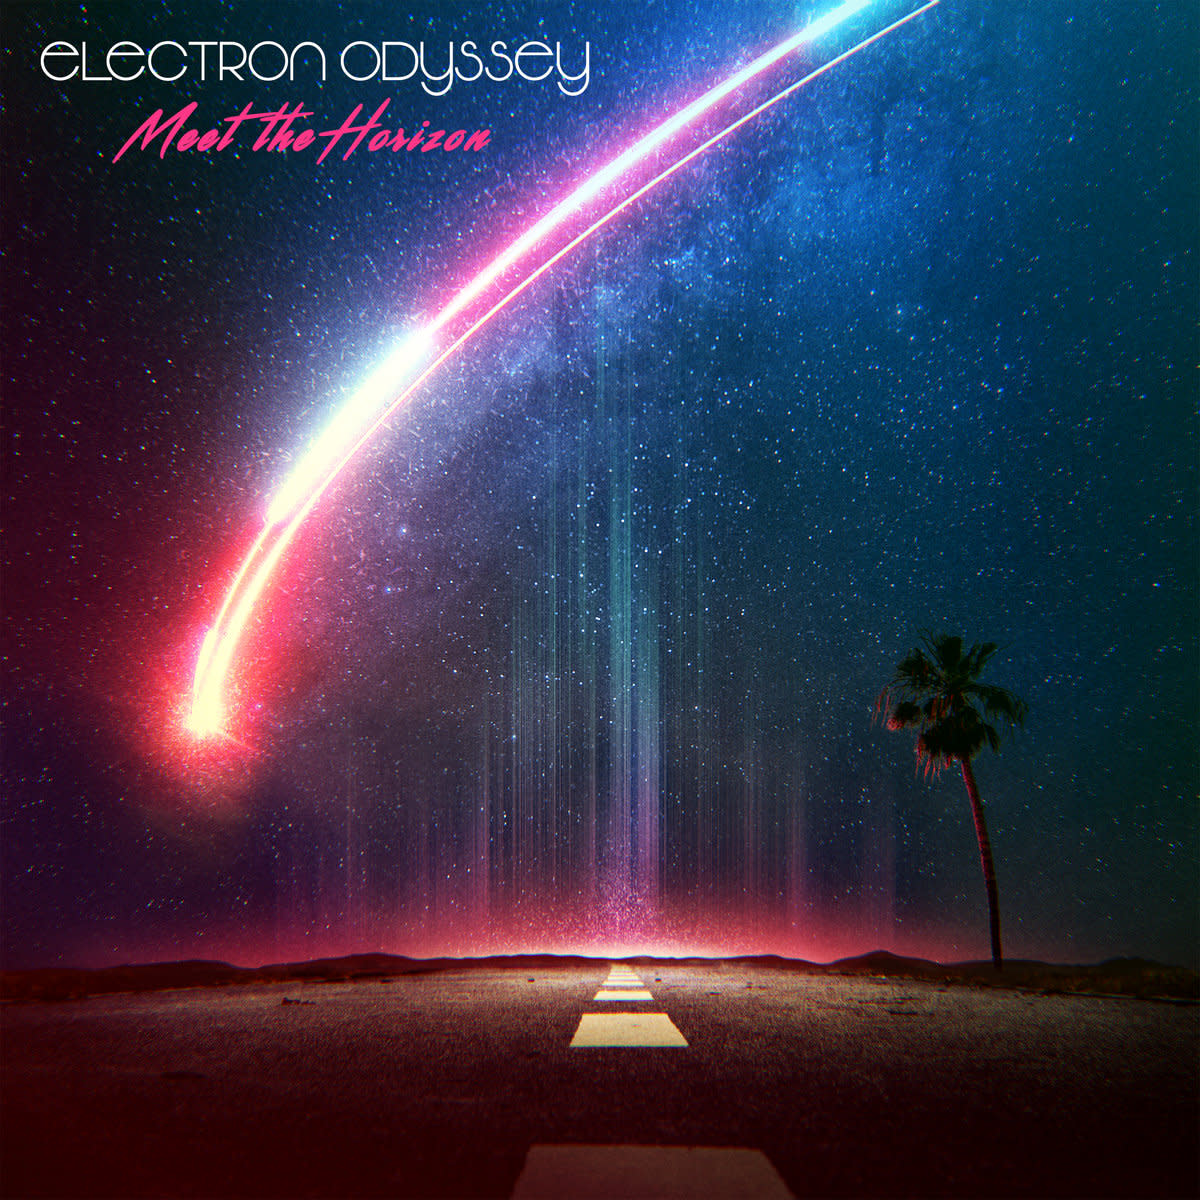 synth-single-review-meet-the-horizon-by-electron-odyssey